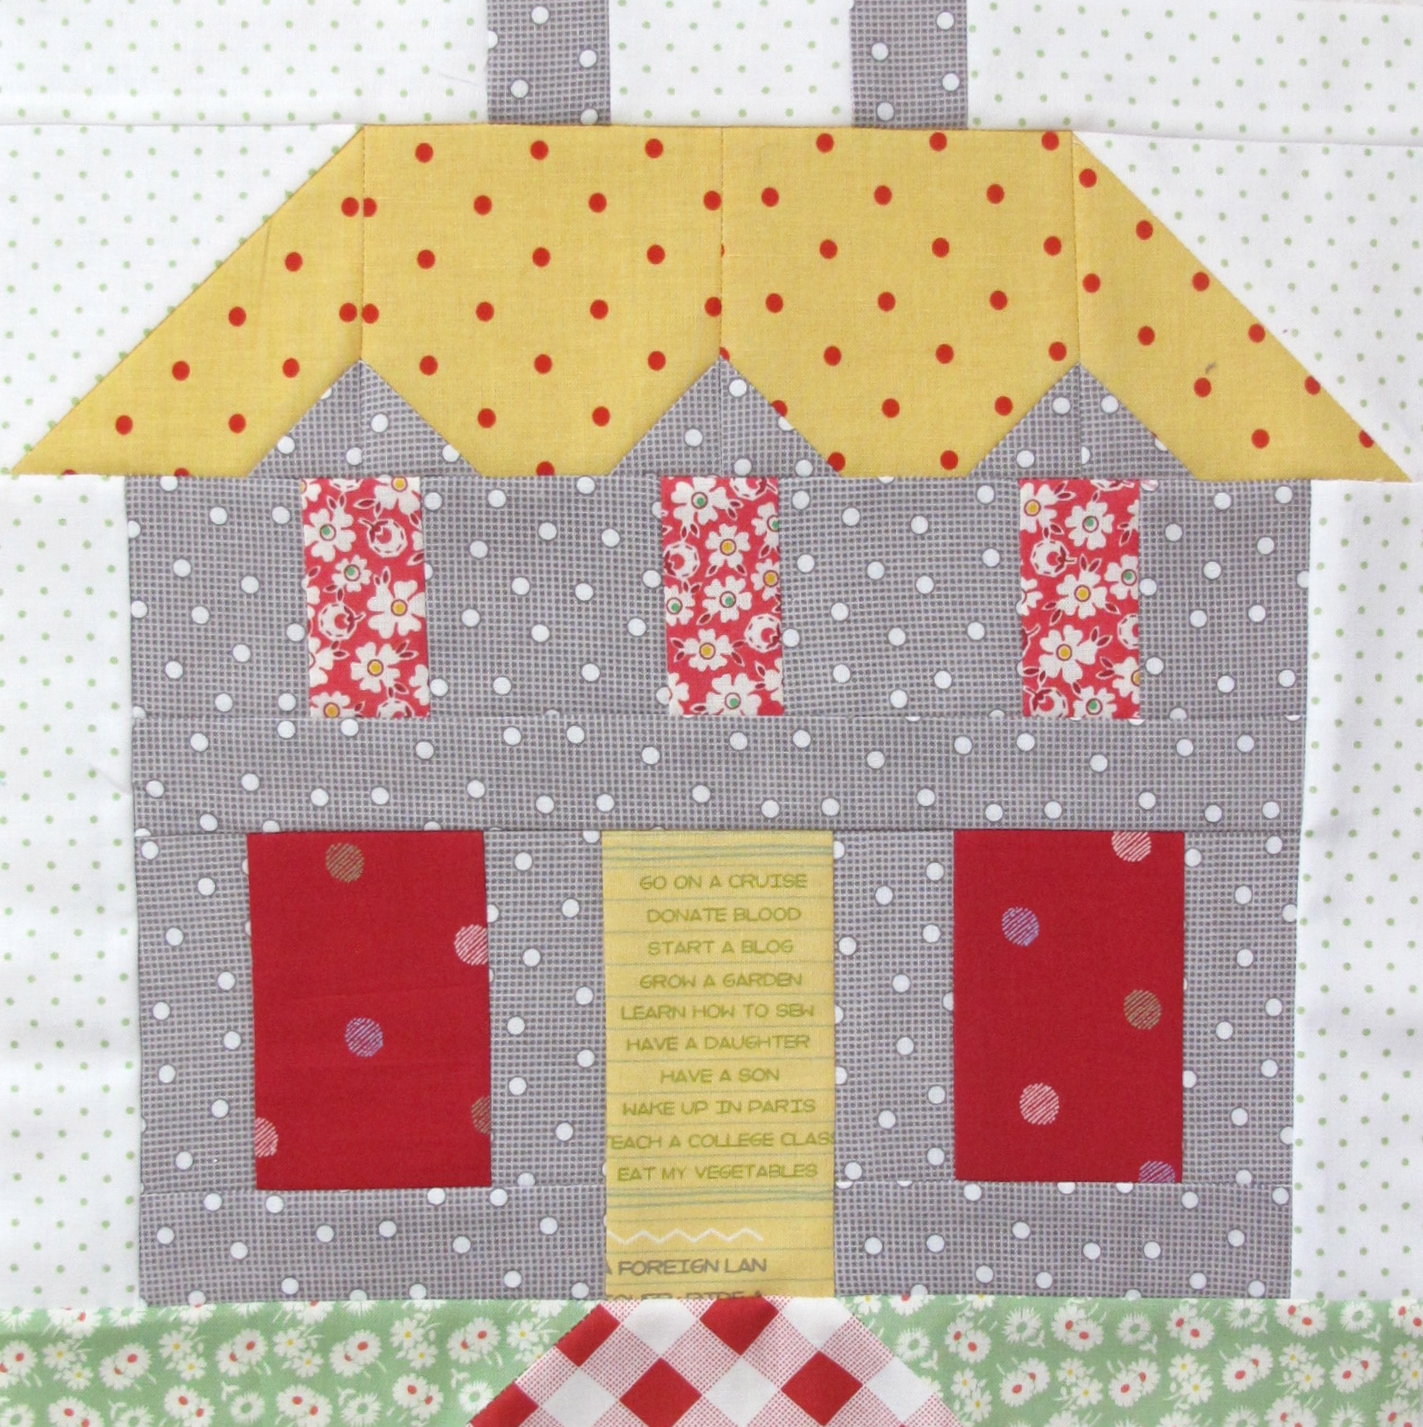 Quilt Block Patterns Of Houses : Bee In My Bonnet: My Home Sweet Home Quilt Block Pattern - In Quiltmakers Magazine 100 Blocks!!!